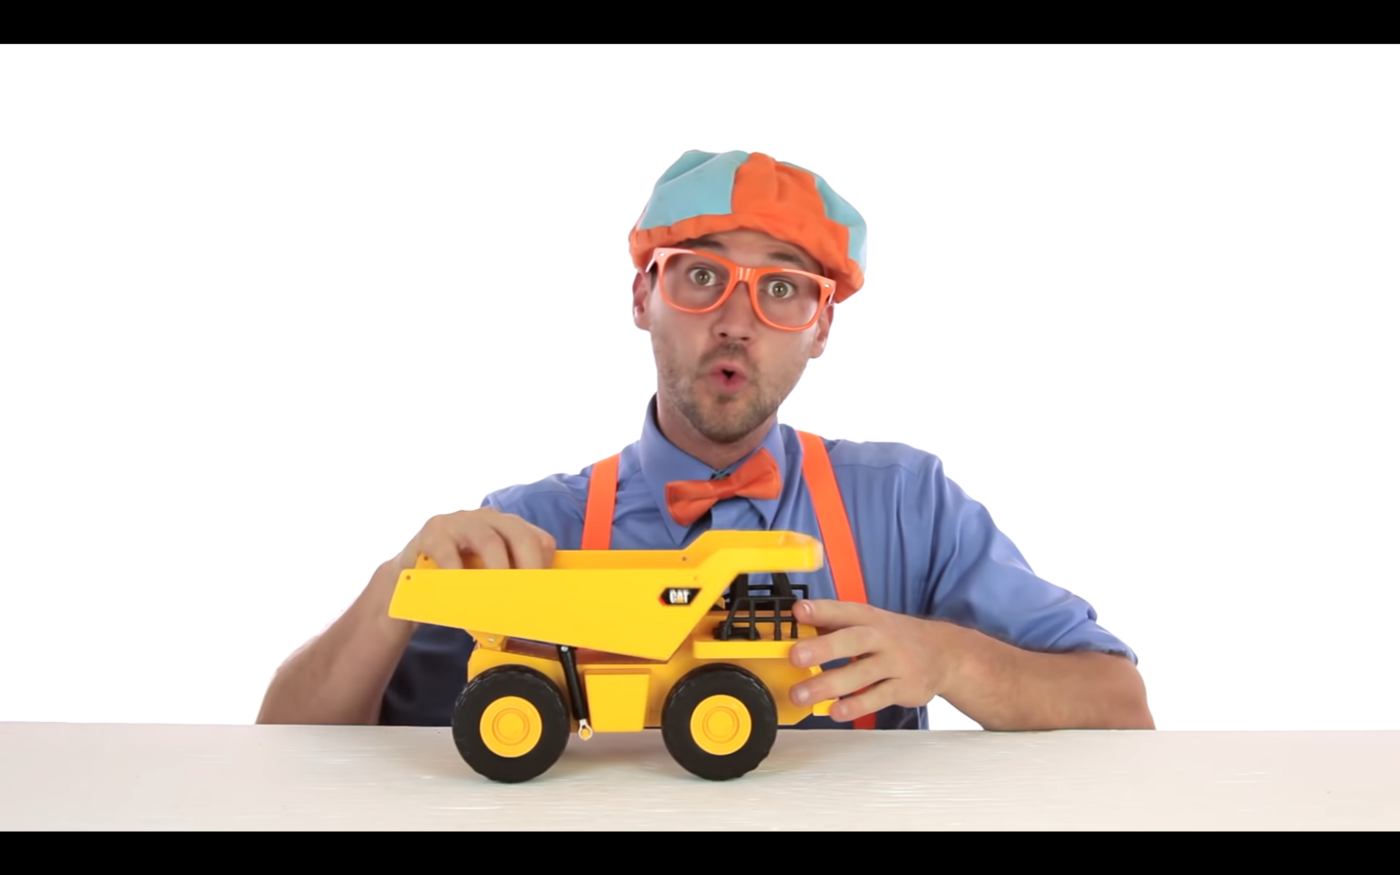 Stevin John, better known as Blippi.